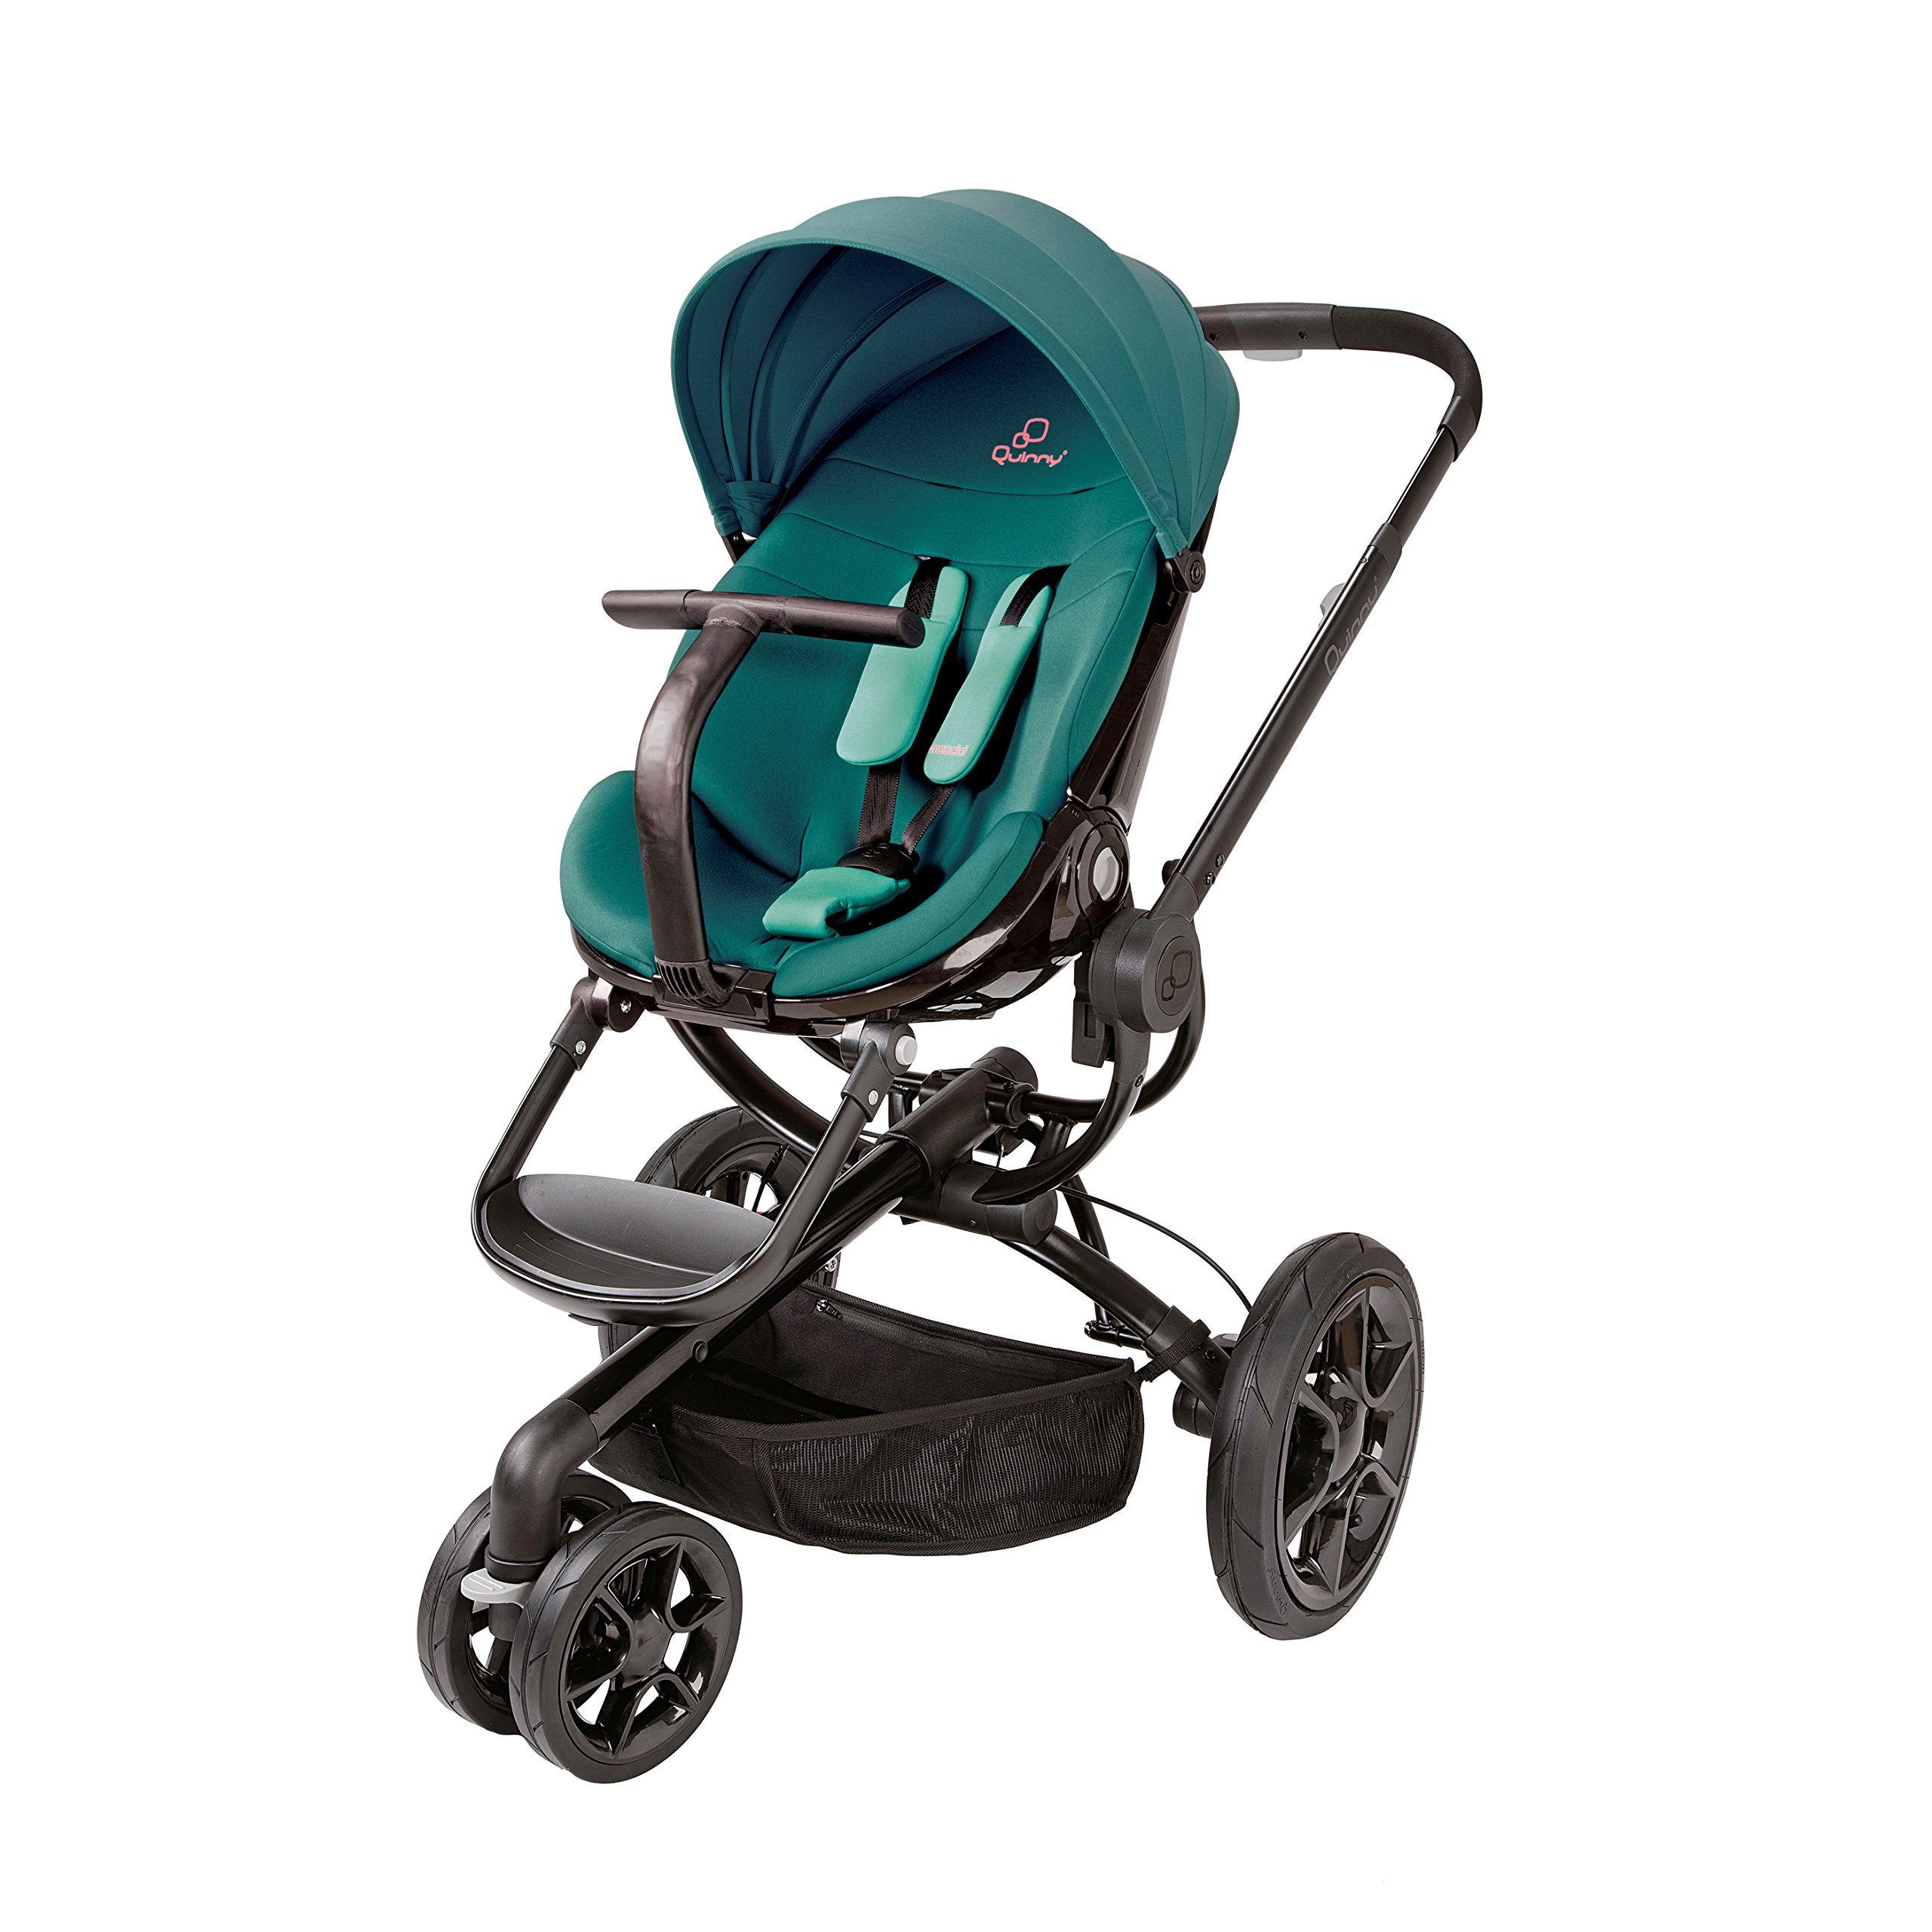 Quinny Moodd Stroller, Green Courage by Quinny (Image #1)